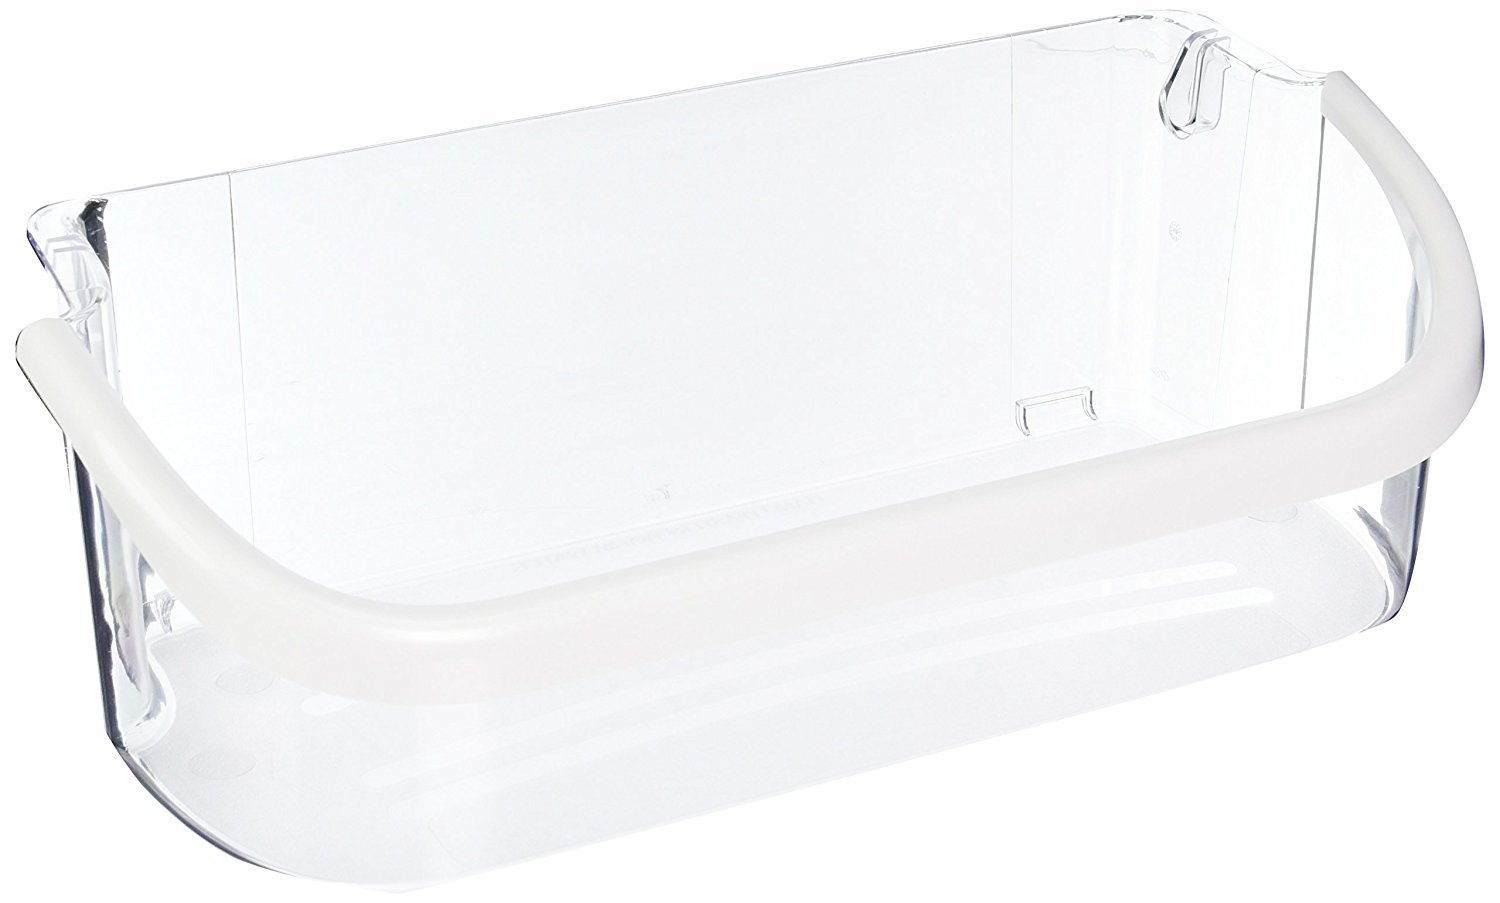 241808205 Door Bin Compatible with Frigidaire Refrigerator